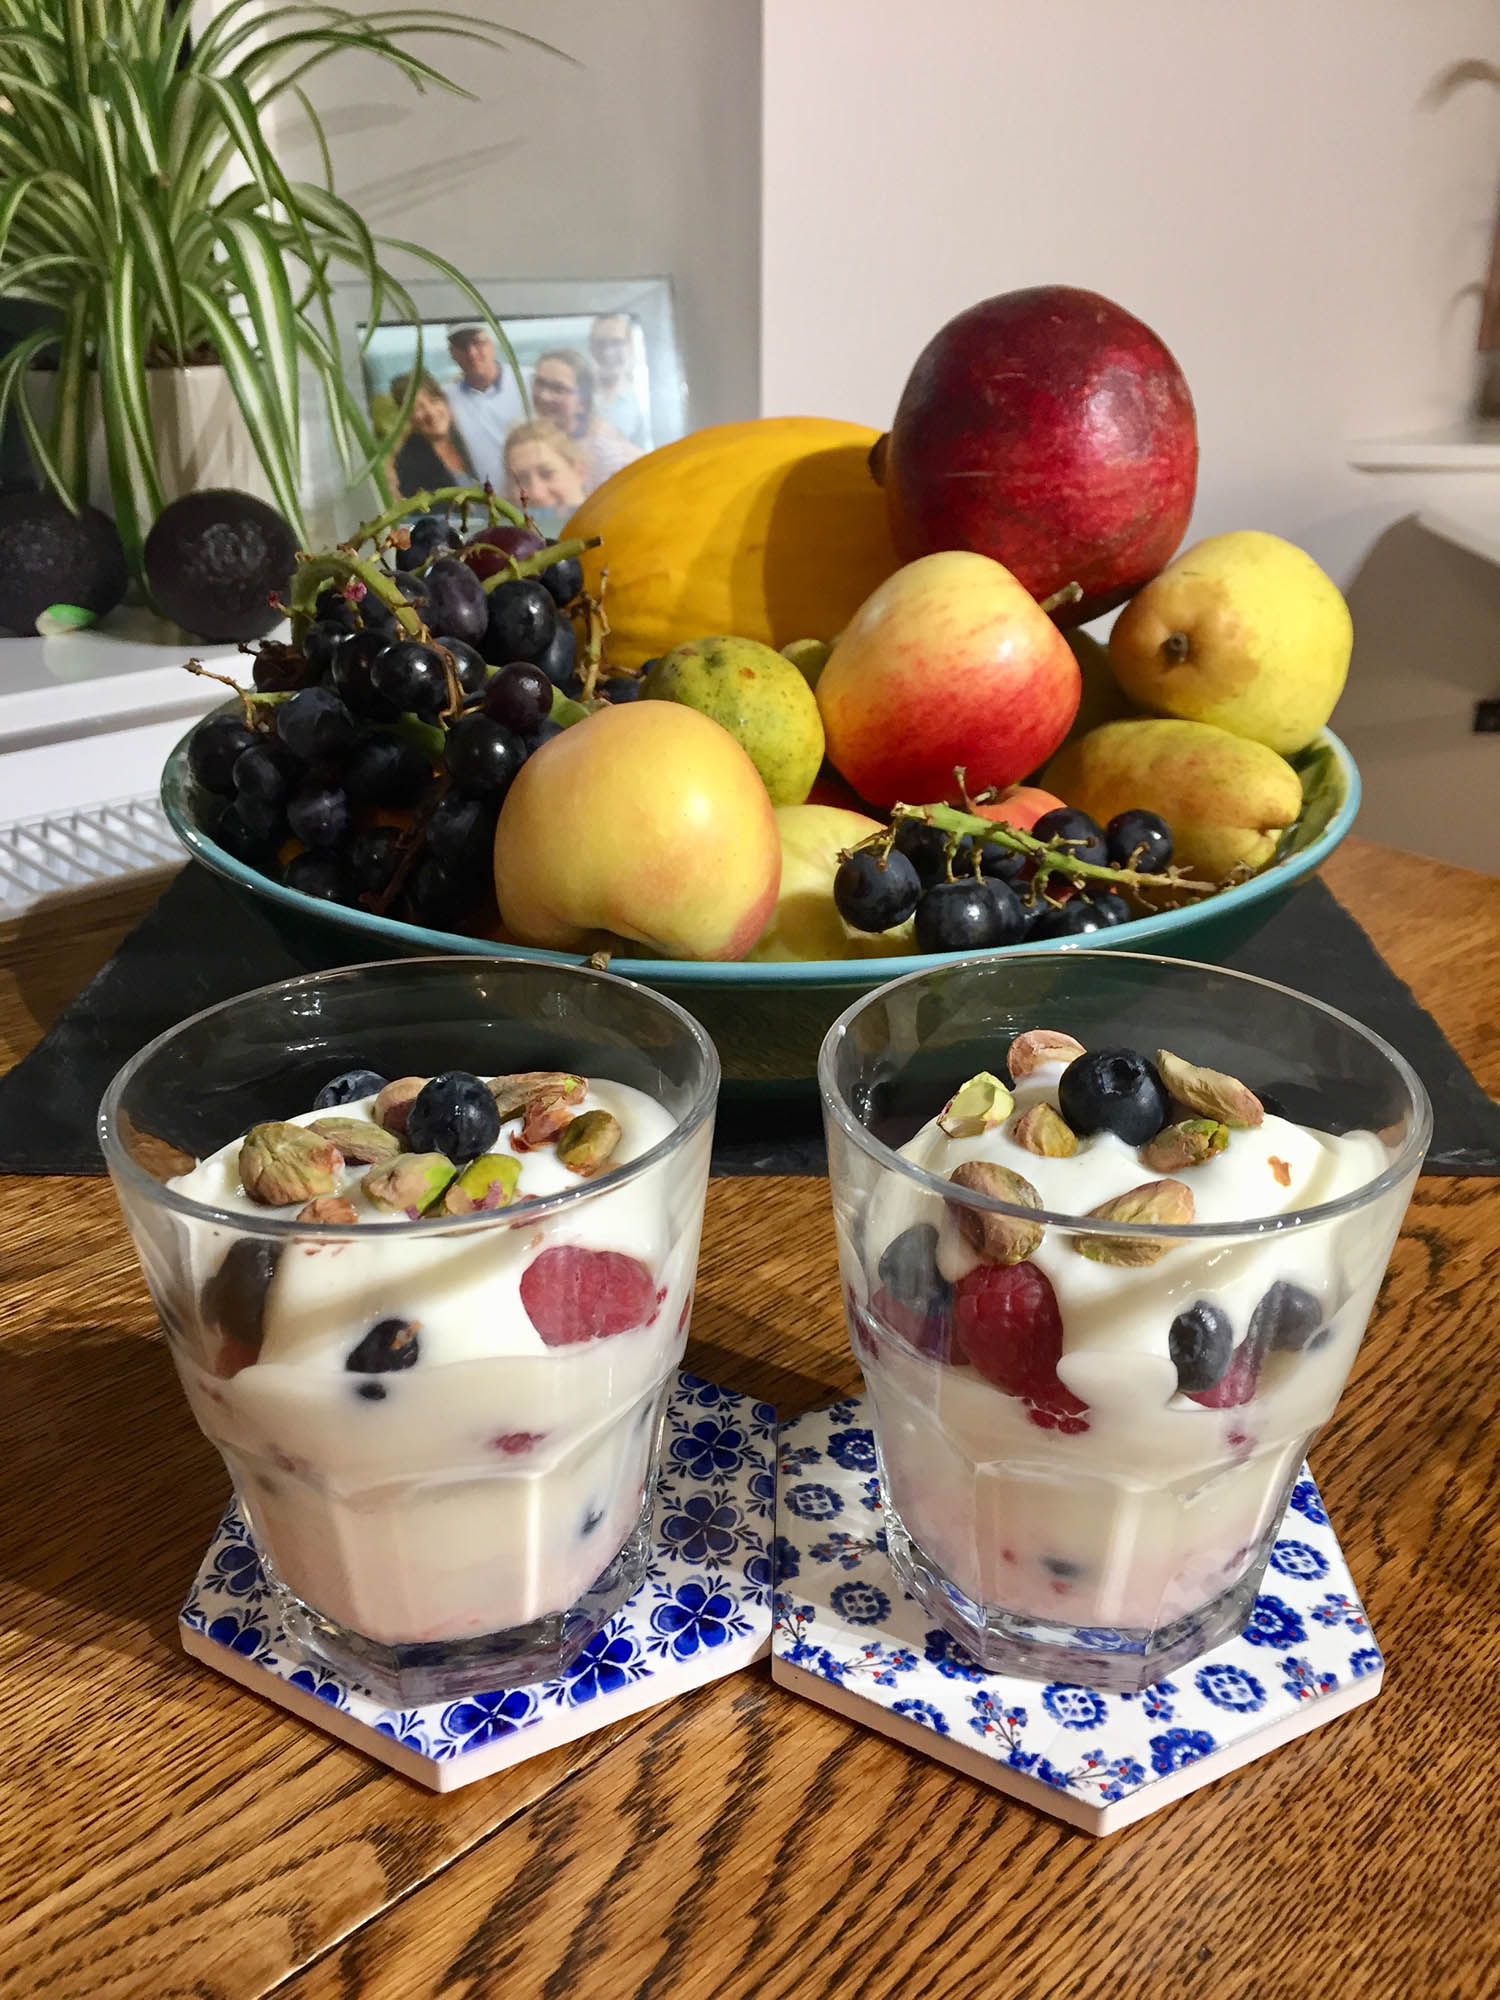 Slimming world yoghurt dessert